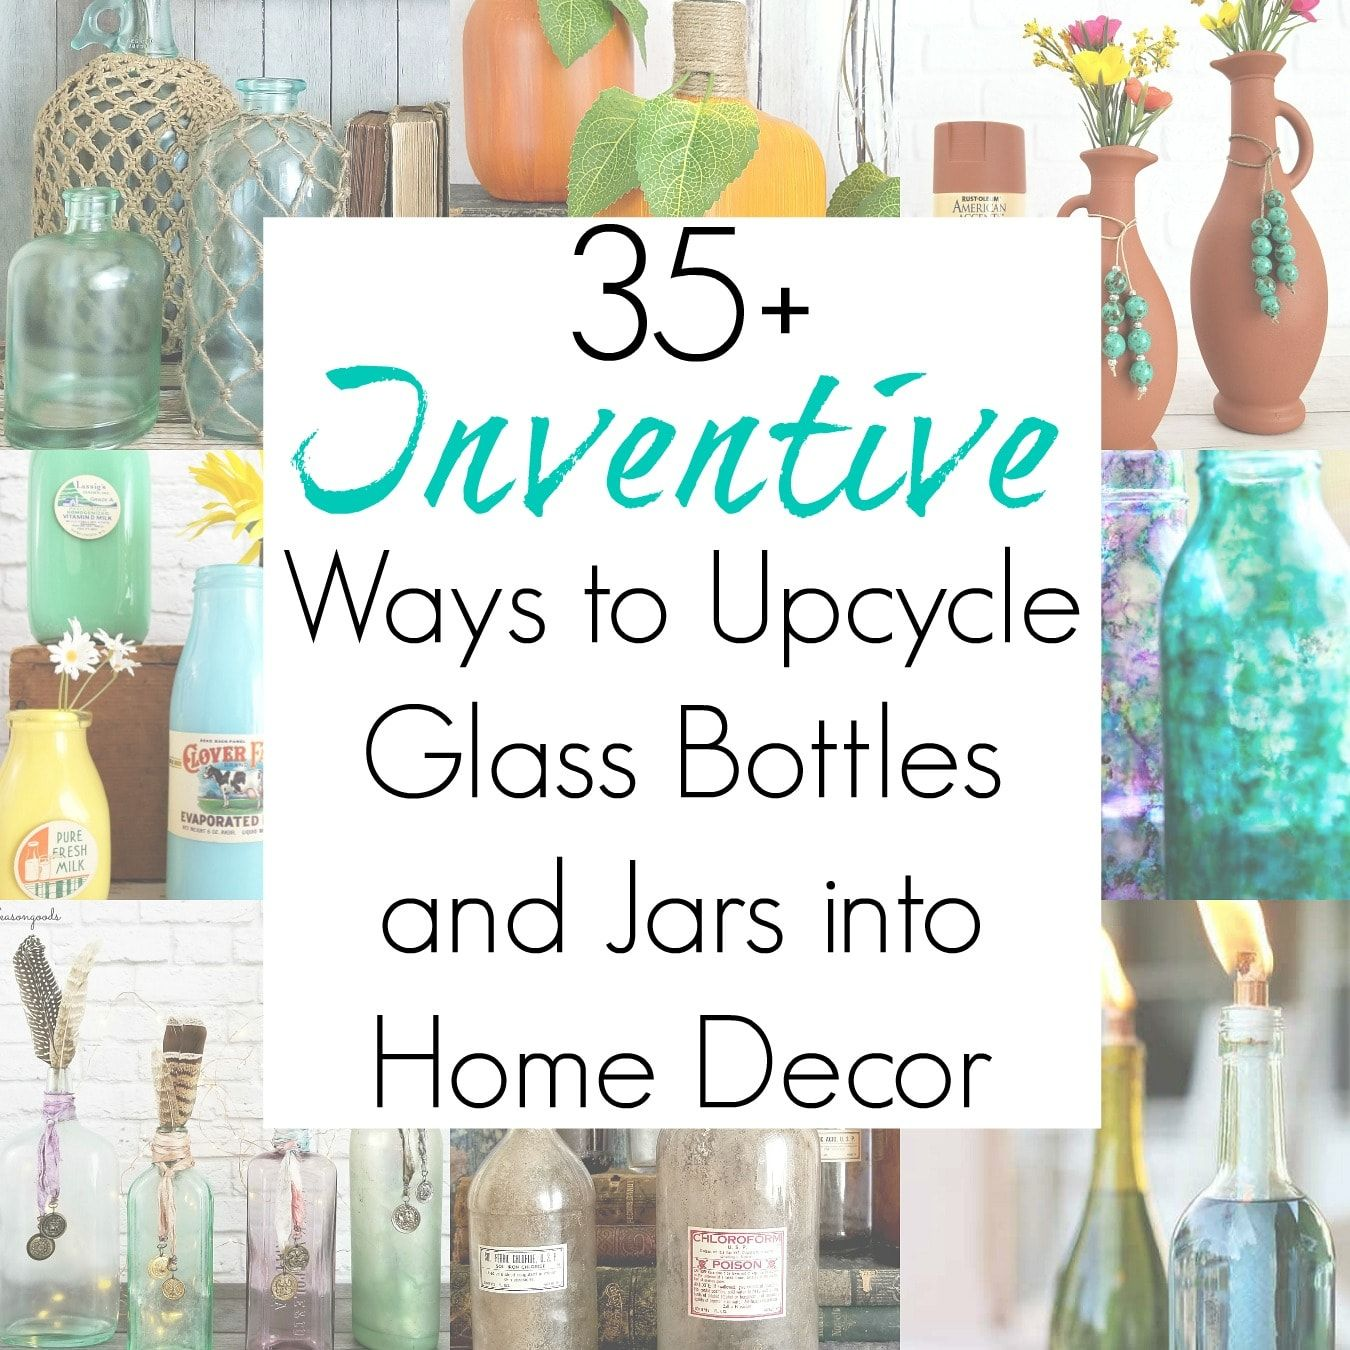 Glass Bottle Crafts and Upcycling Ideas for Glass Jars and Empty Bottles